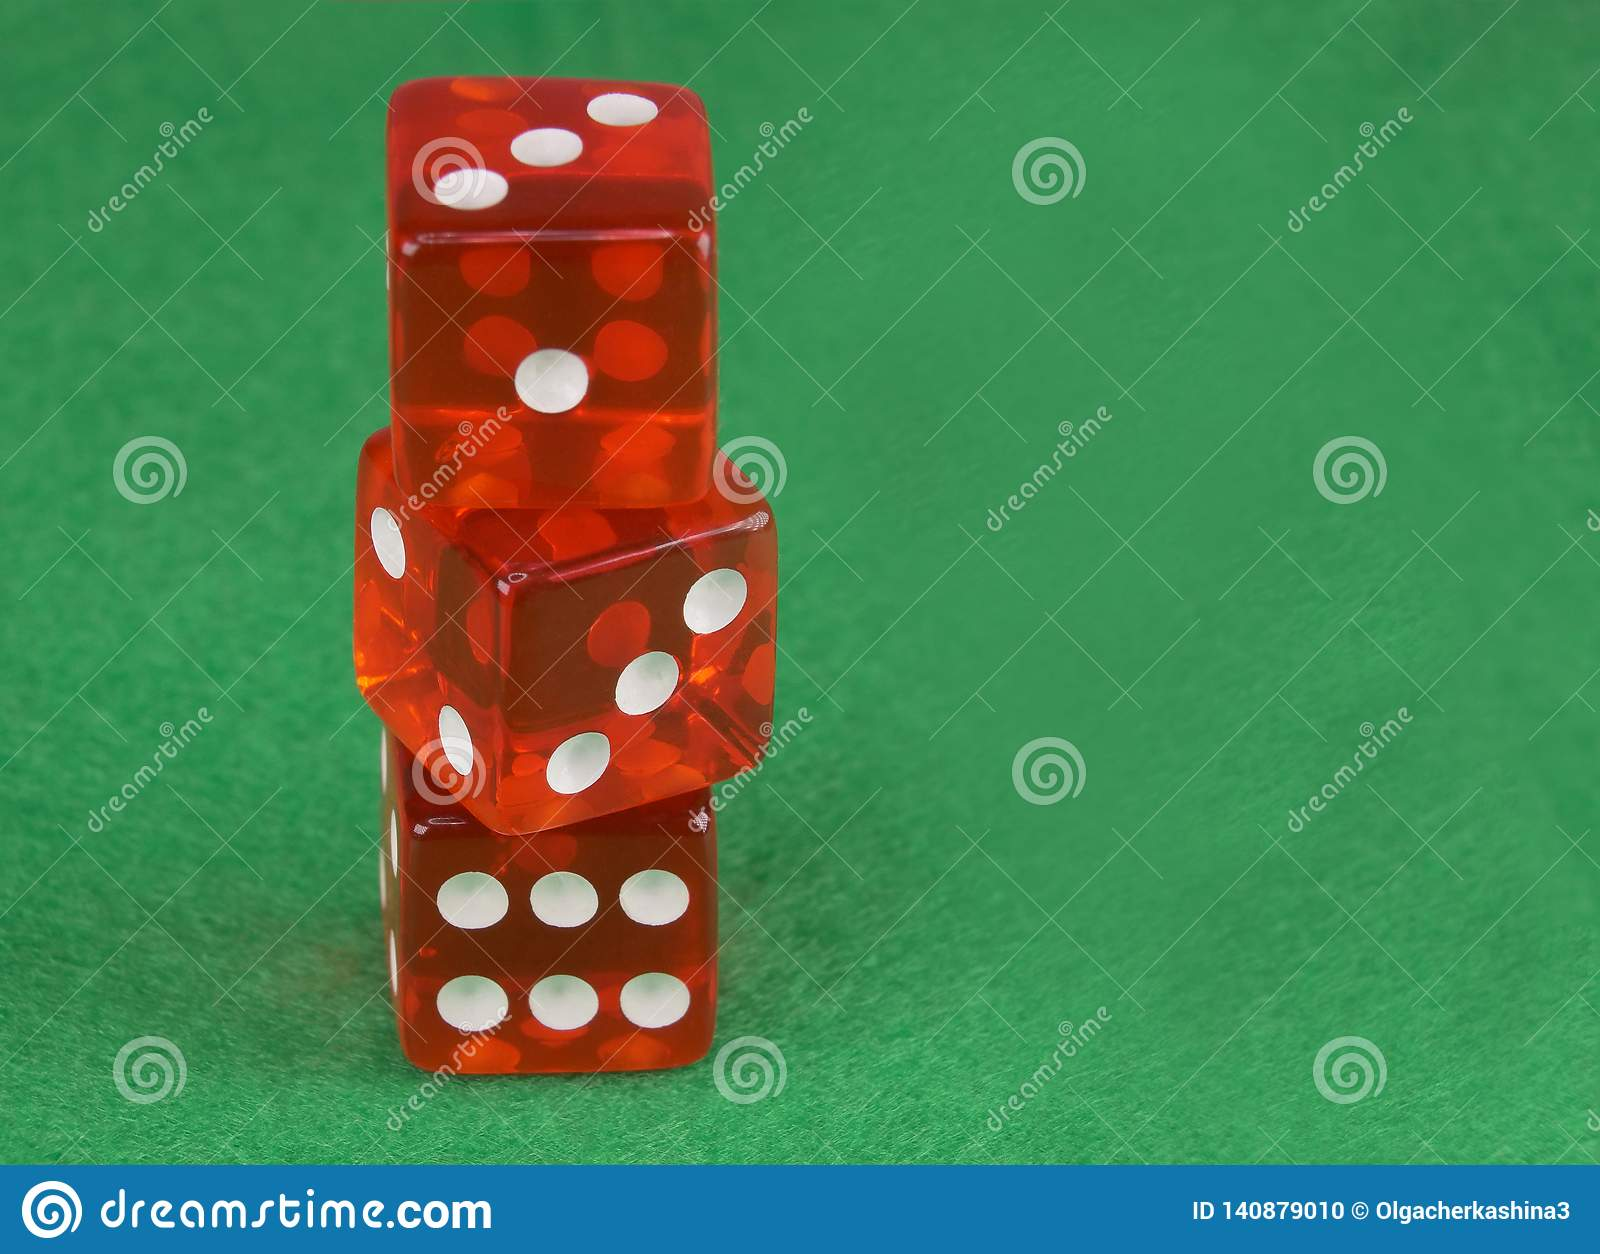 Three red casino dices on green cloth. The concept of online gambling. Copy space for text.